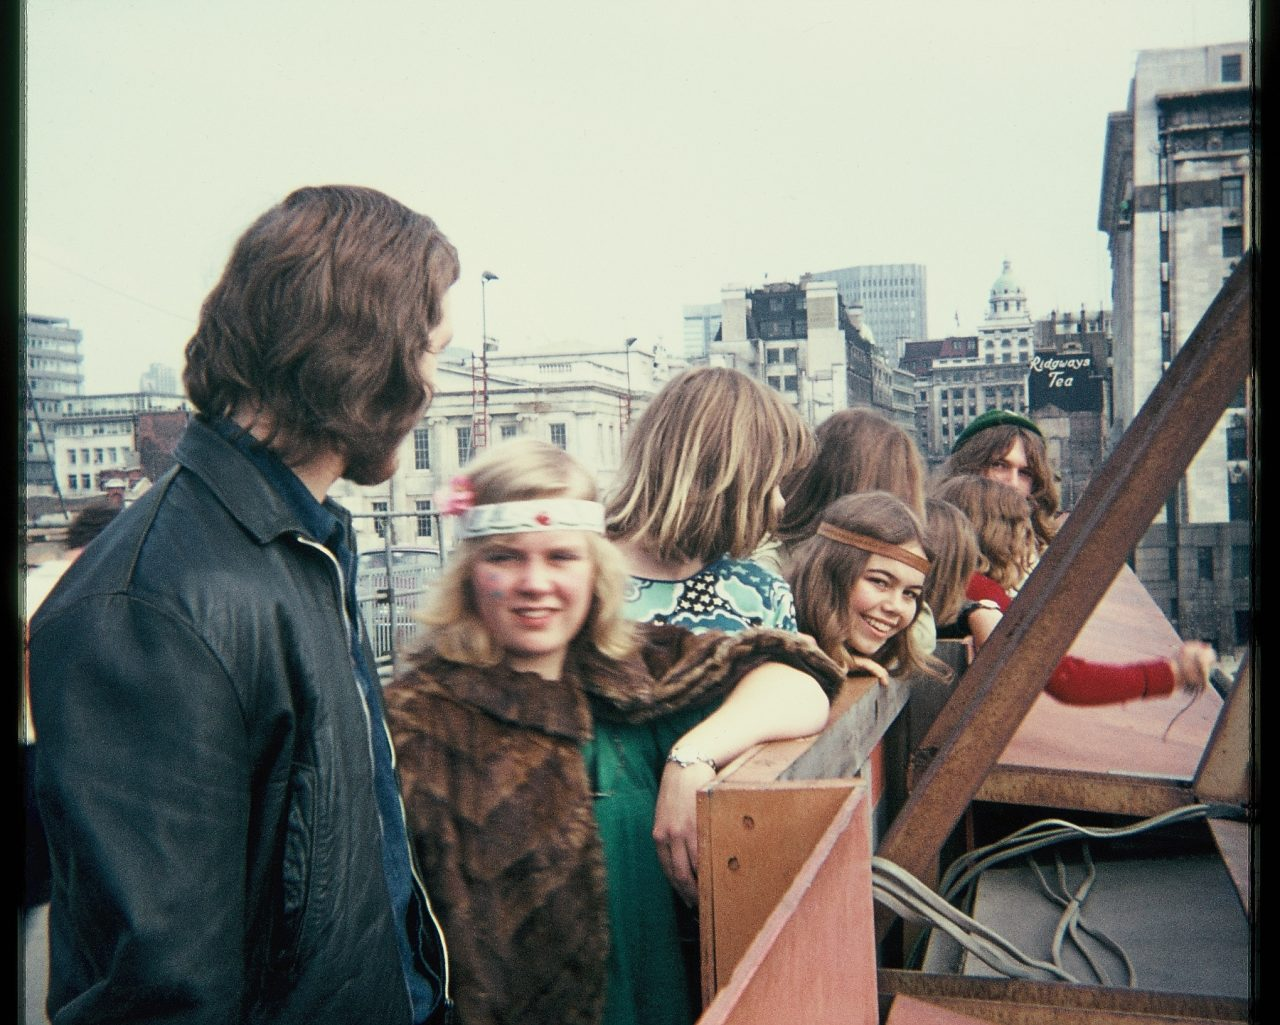 'The Way We Were' – Essex Friends During the Summer of 1972